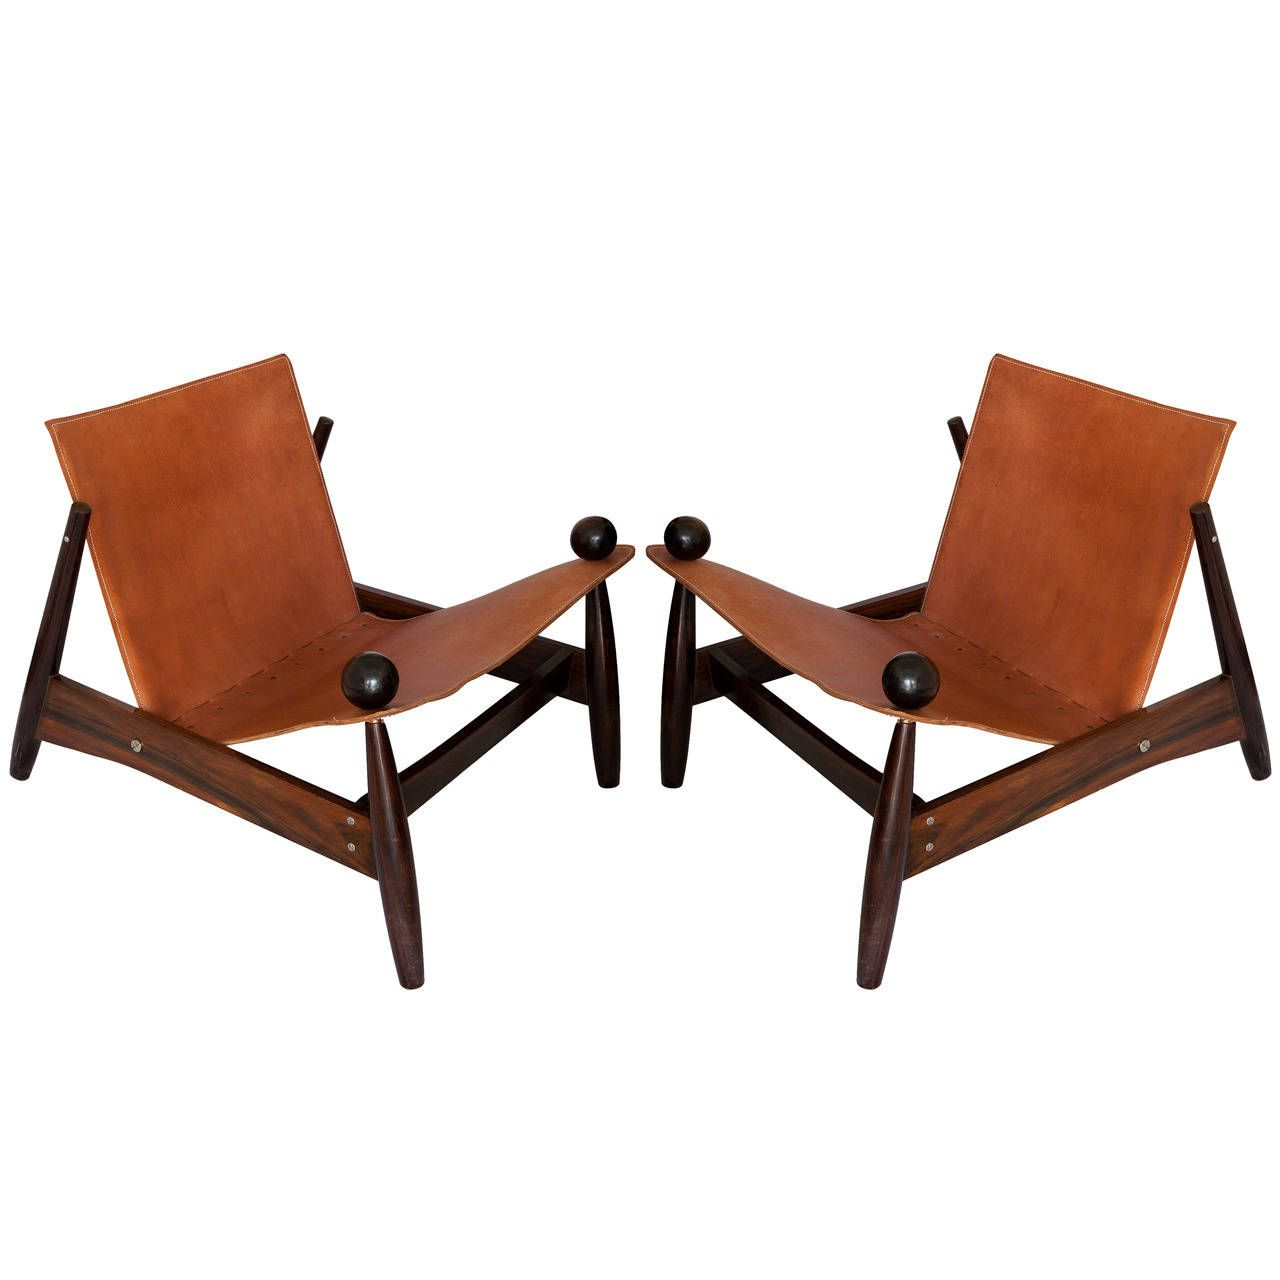 Jacaranda and leather lounge chairs, designer not identified.